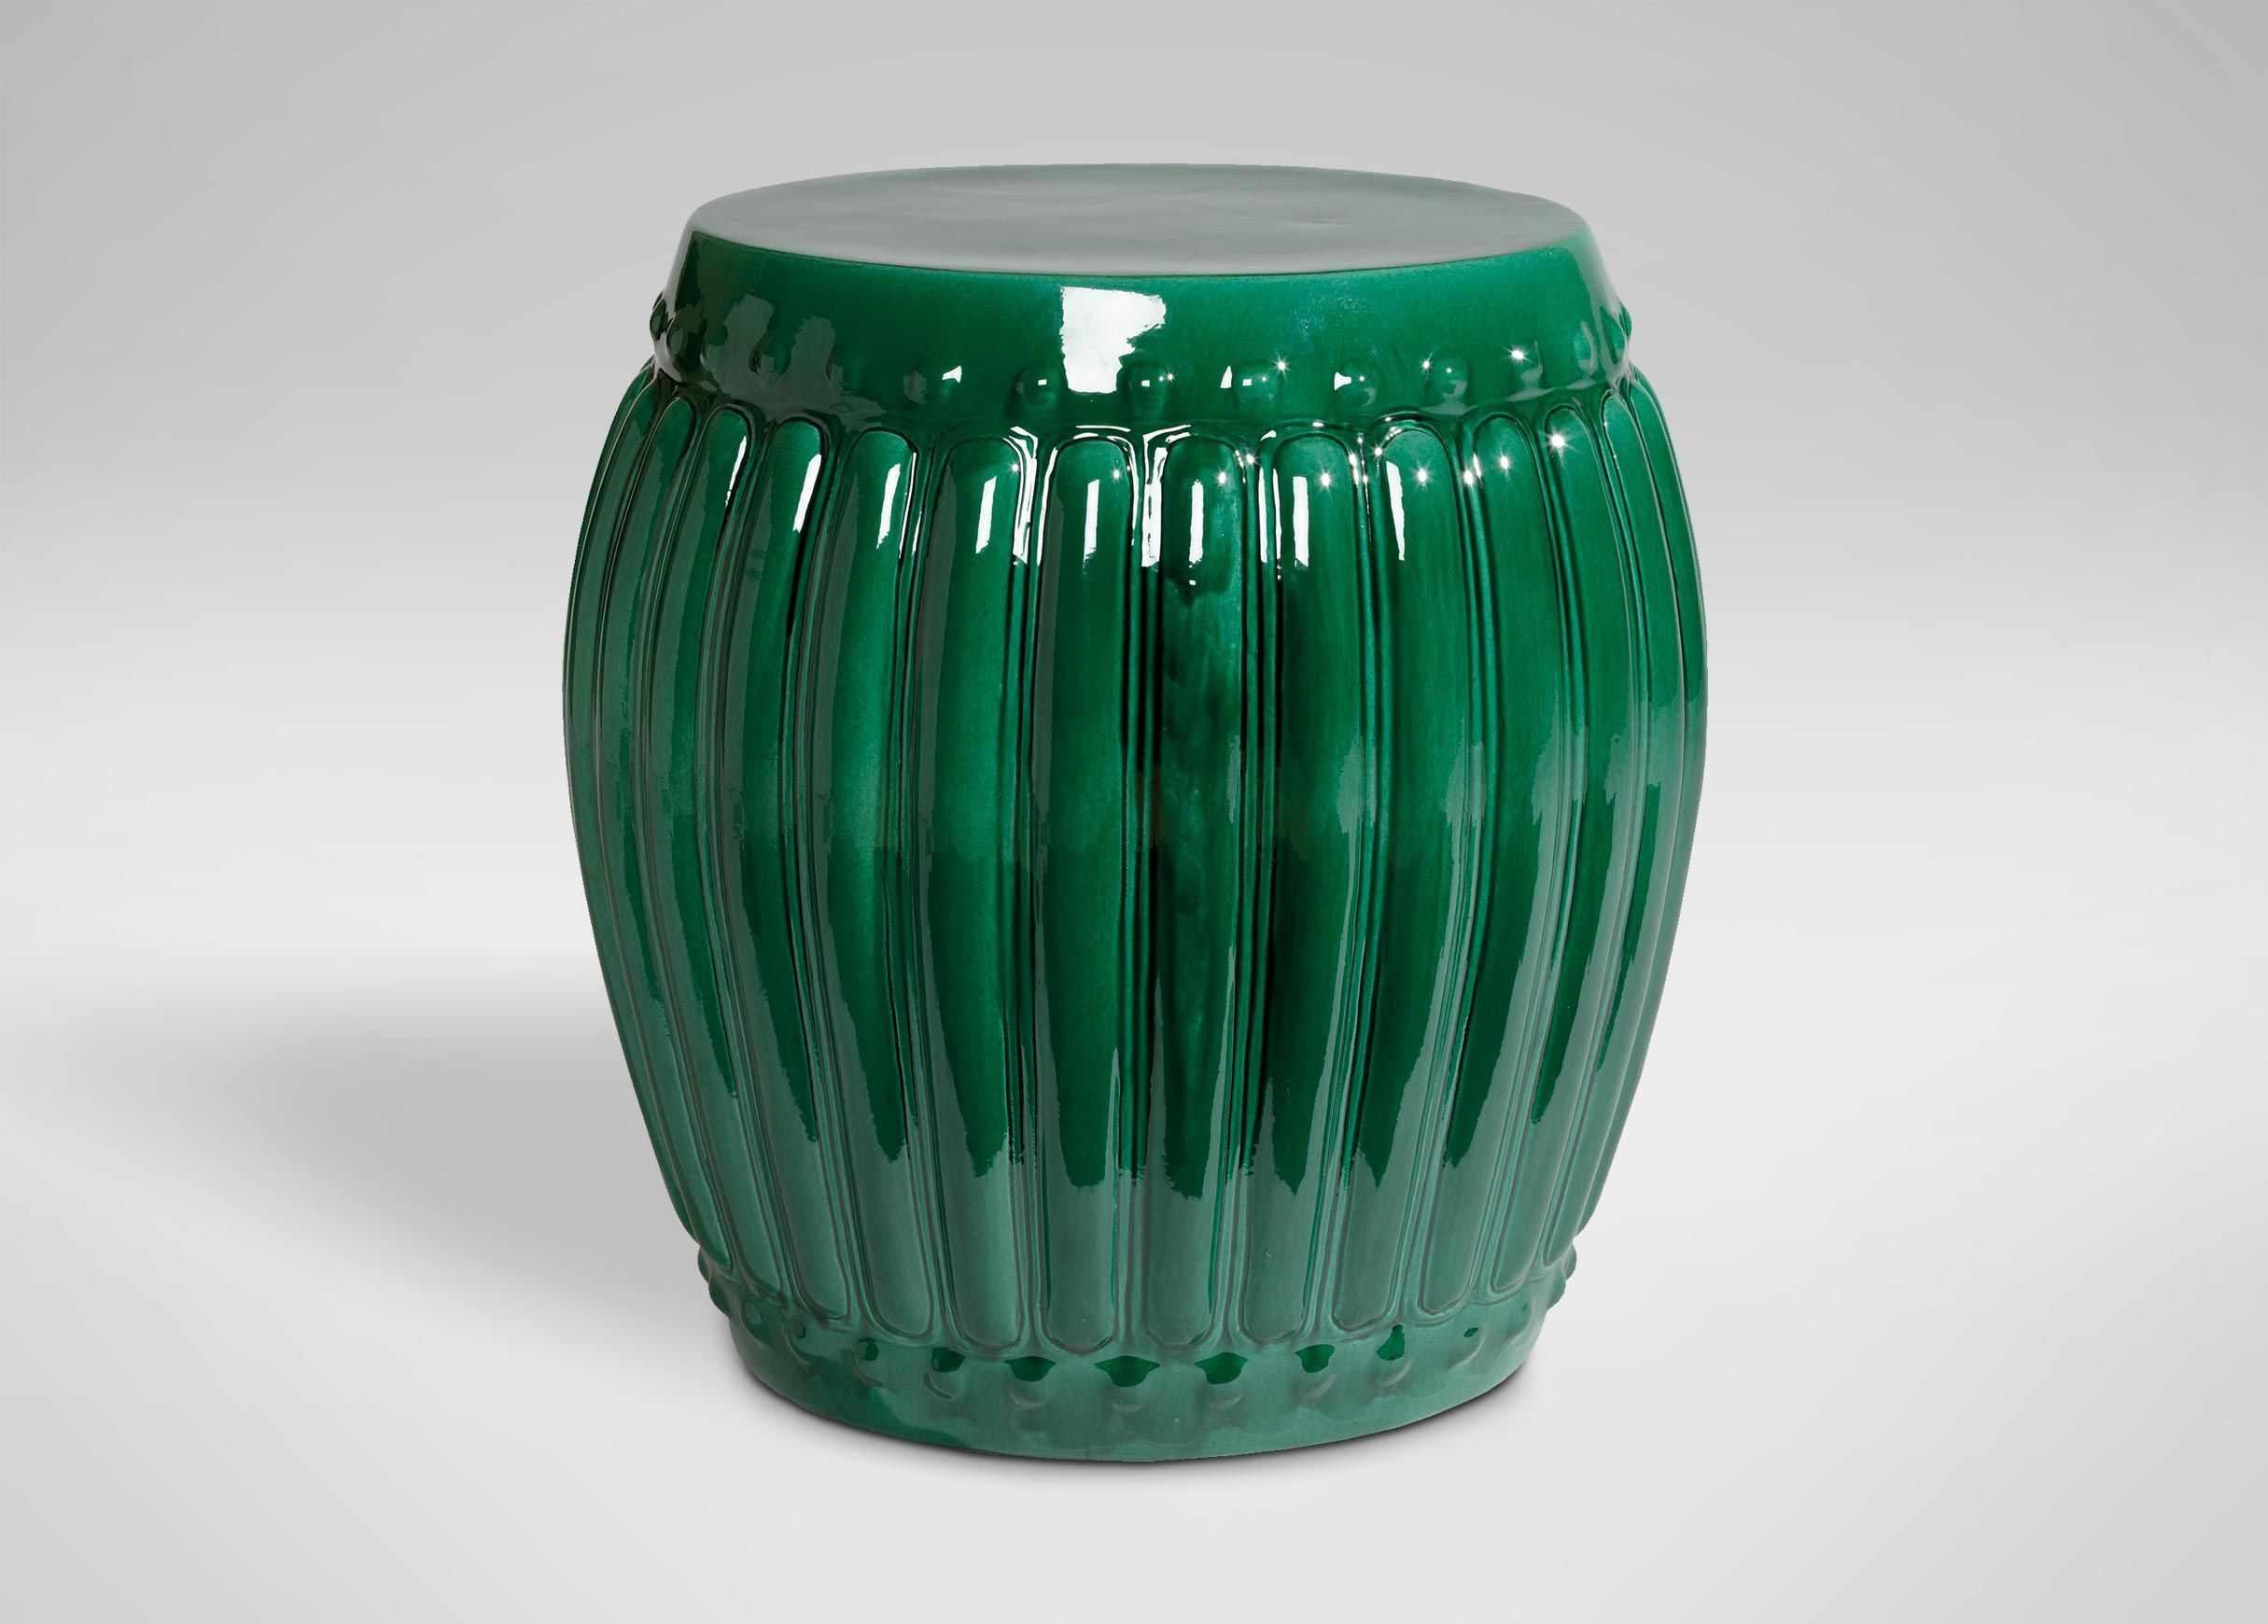 meet the emerald drum one many that are apart garden seat ceramic accent table collection this shape stool adds perfect pop color any space modern end with storage threshold